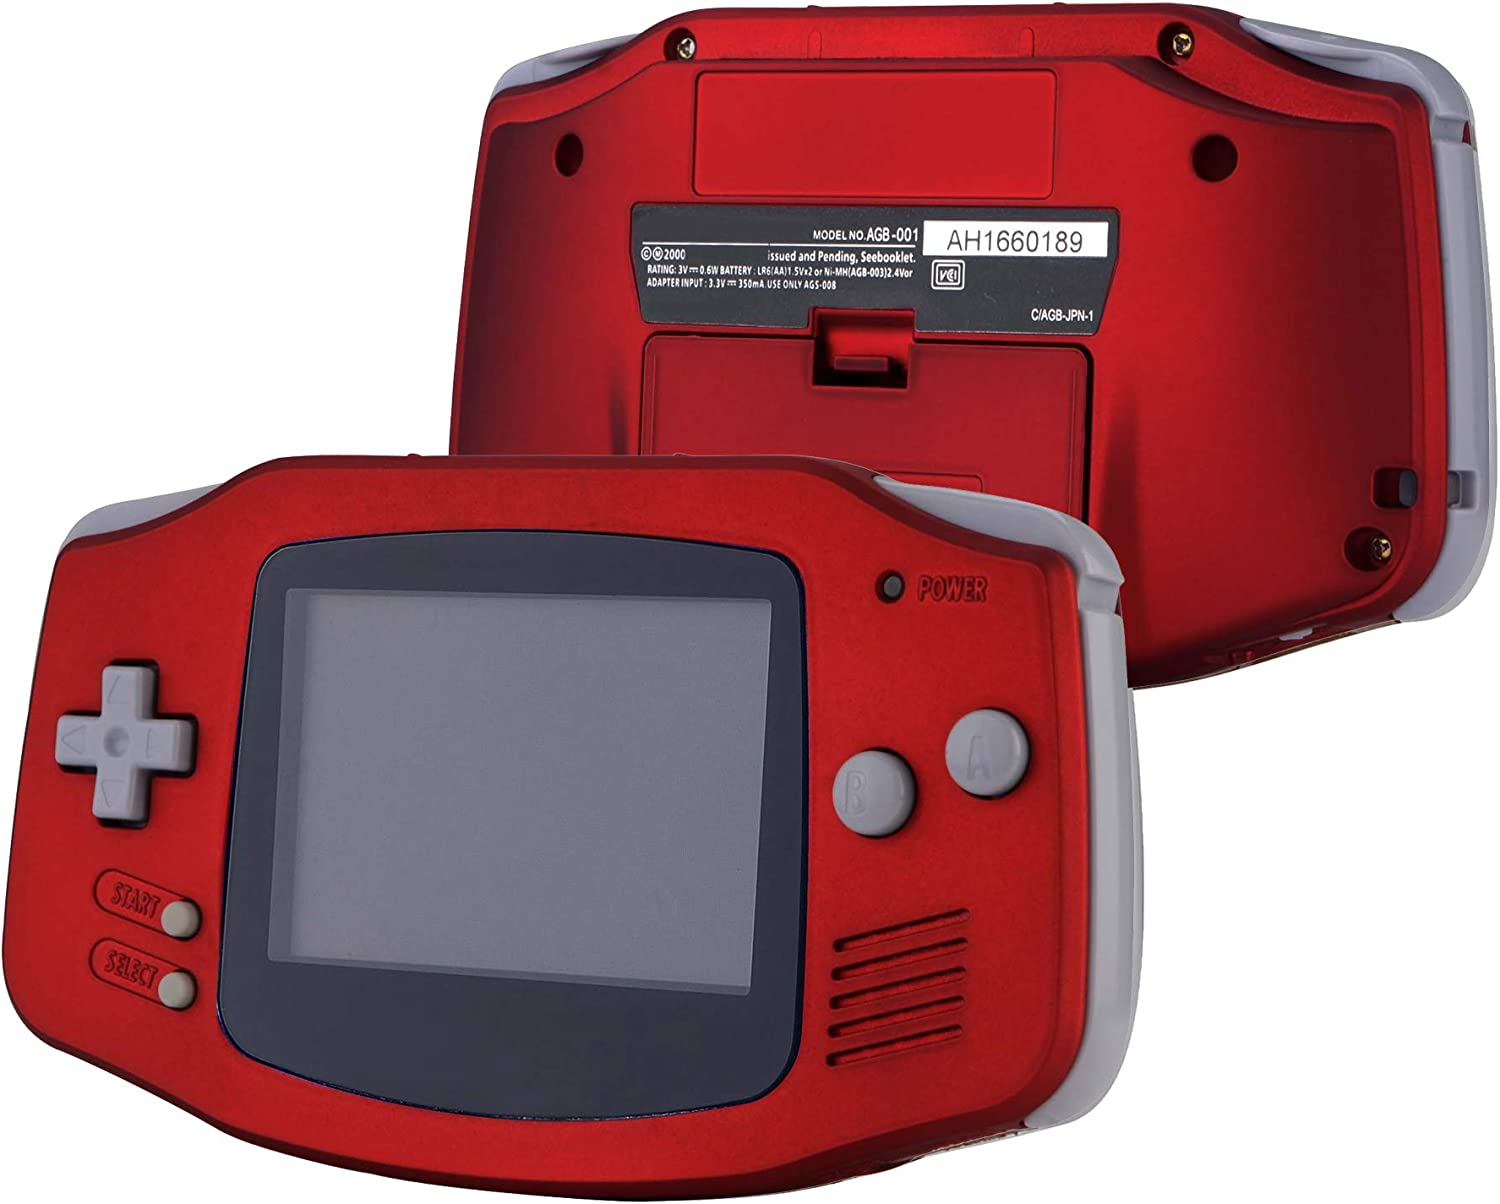 eXtremeRate Scarlet Red Soft Touch GBA Replacement Full Housing Shell Cover w/Buttons Screws Screwdriver Tools Set for Gameboy Advance - Handheld Game Console NOT Included: Computers & Accessories